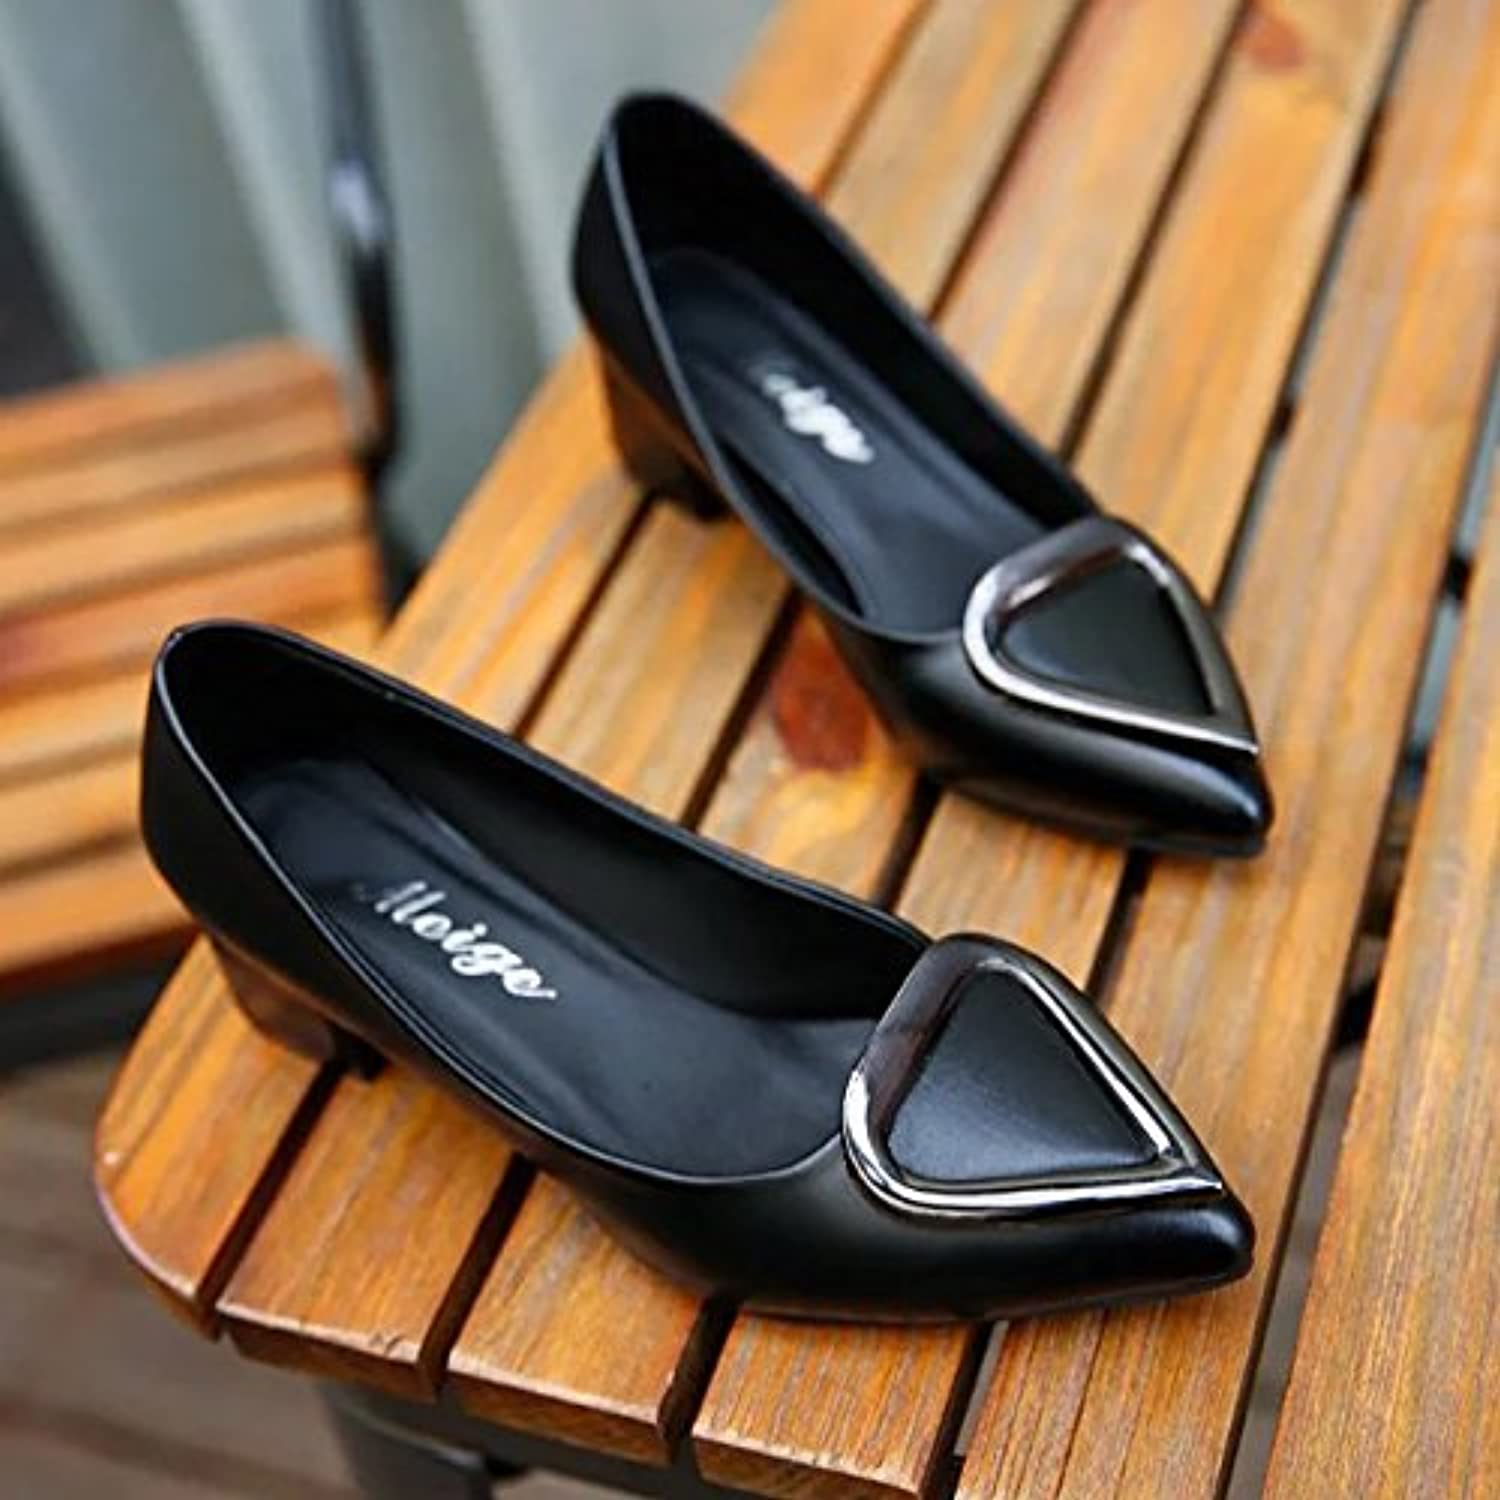 WYMBS Autumn and Winter Gifts Women's shoes